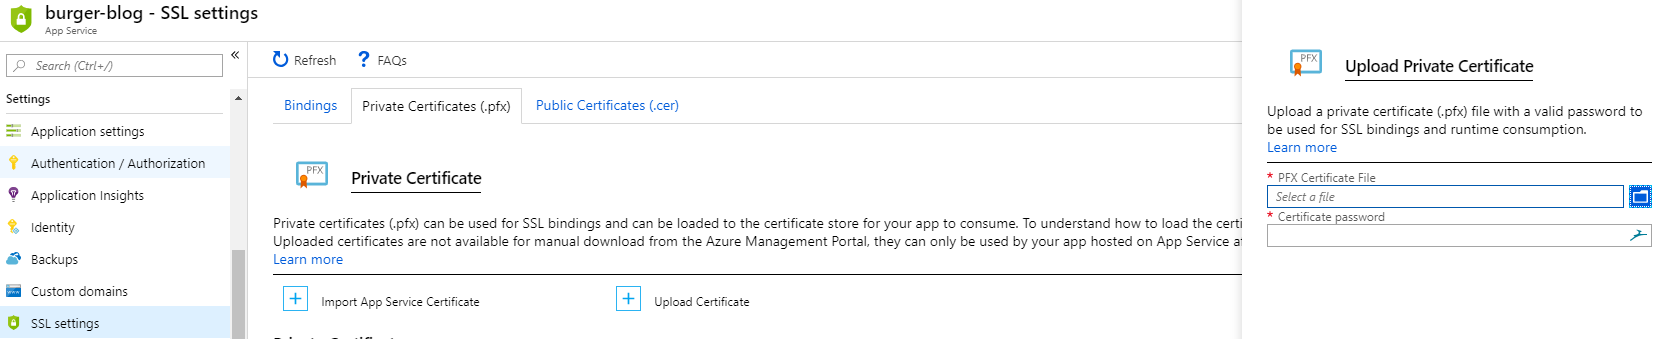 Azure App Service SSL Settings